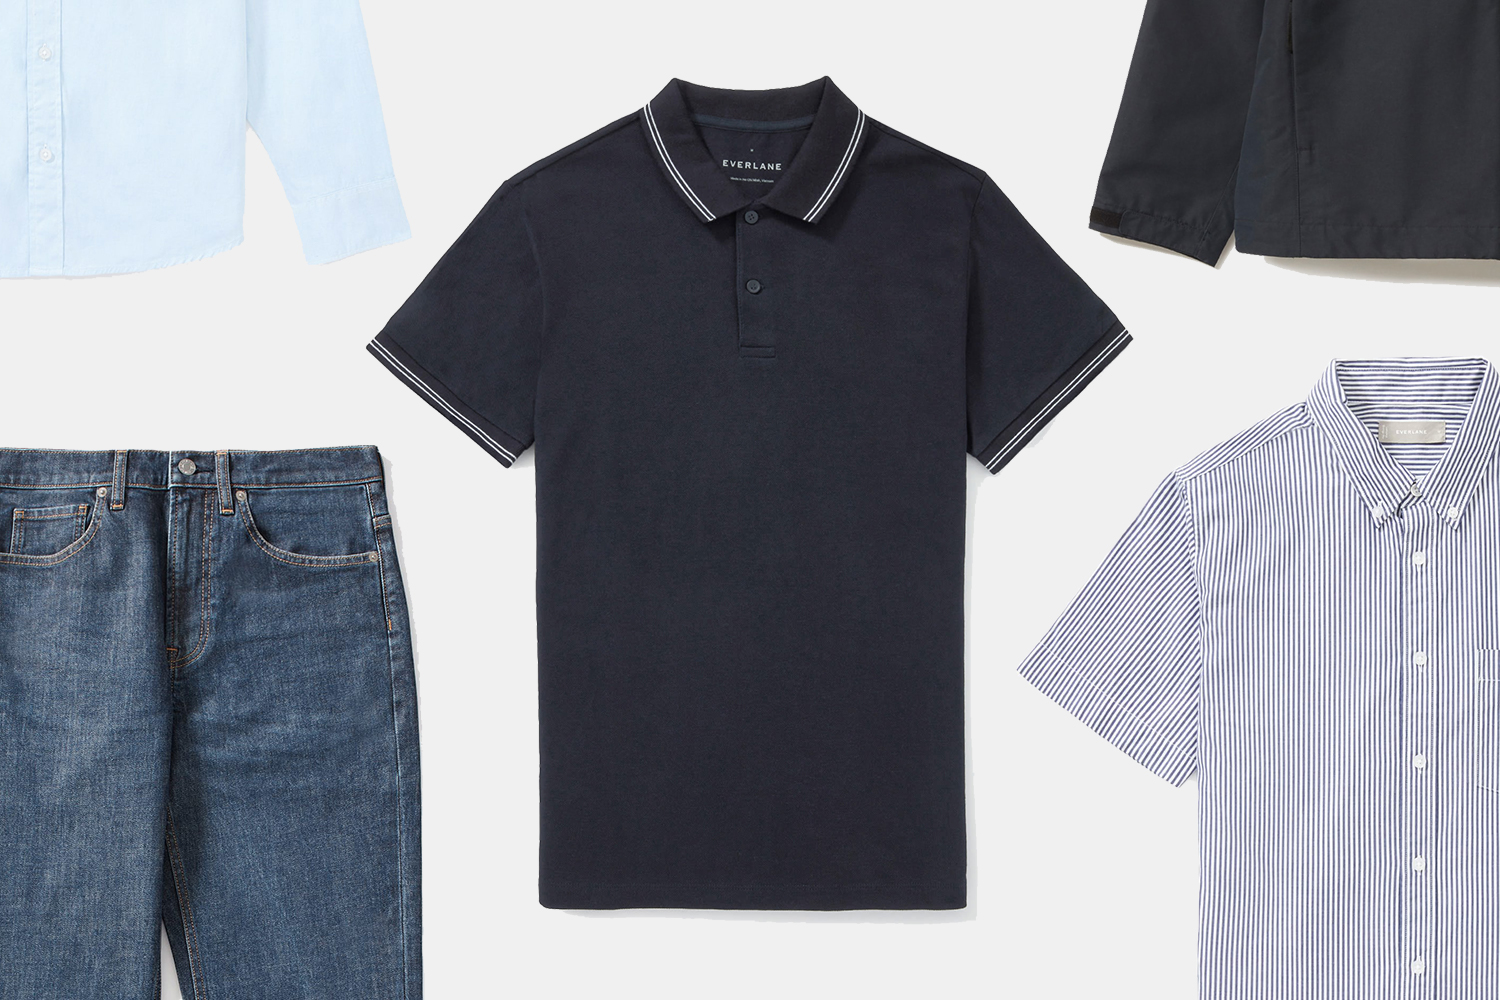 Everlane men's polos, straight fit jeans, Oxford shirts and jackets